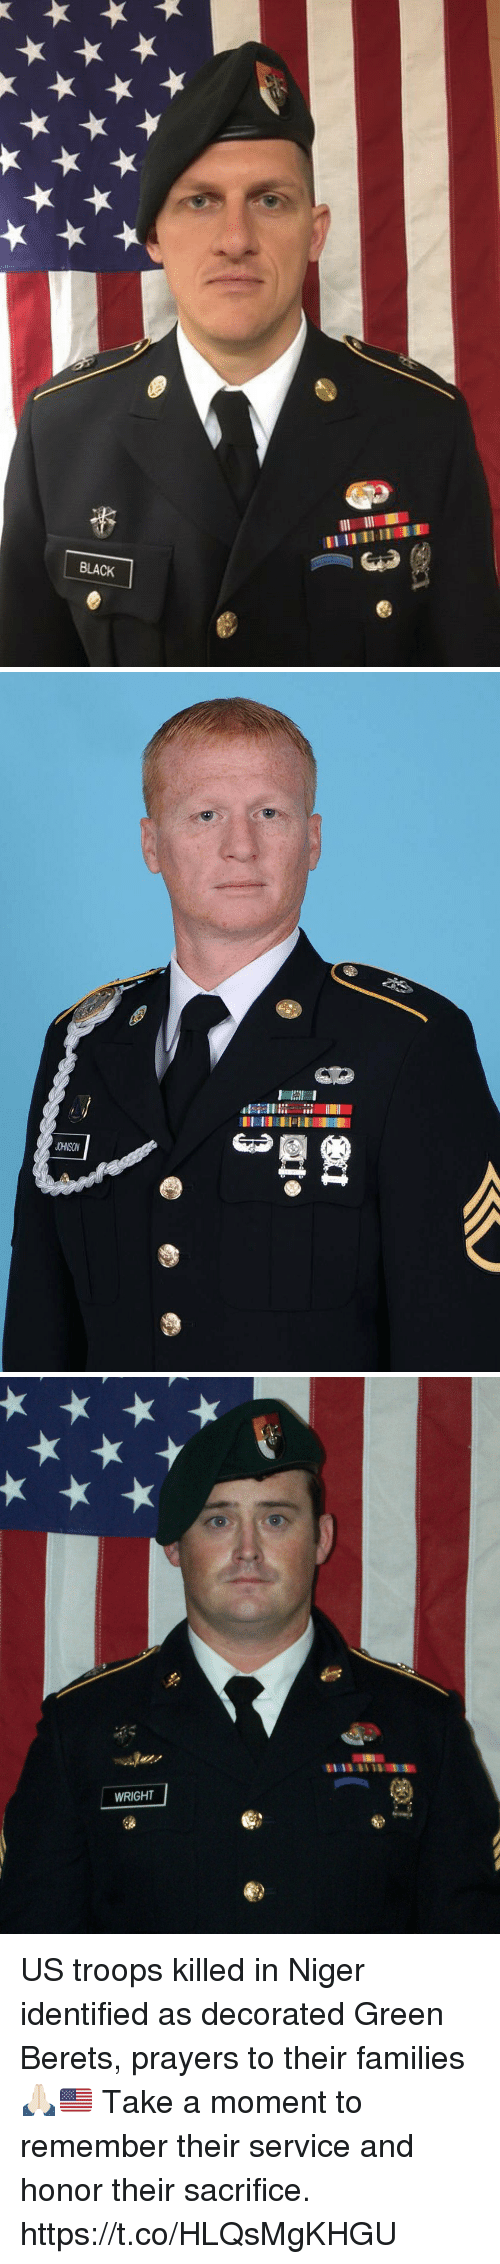 green berets: BLACK   12  JOHNSON   WRIGHT US troops killed in Niger identified as decorated Green Berets, prayers to their families 🙏🏻🇺🇸 Take a moment to remember their service and honor their sacrifice. https://t.co/HLQsMgKHGU